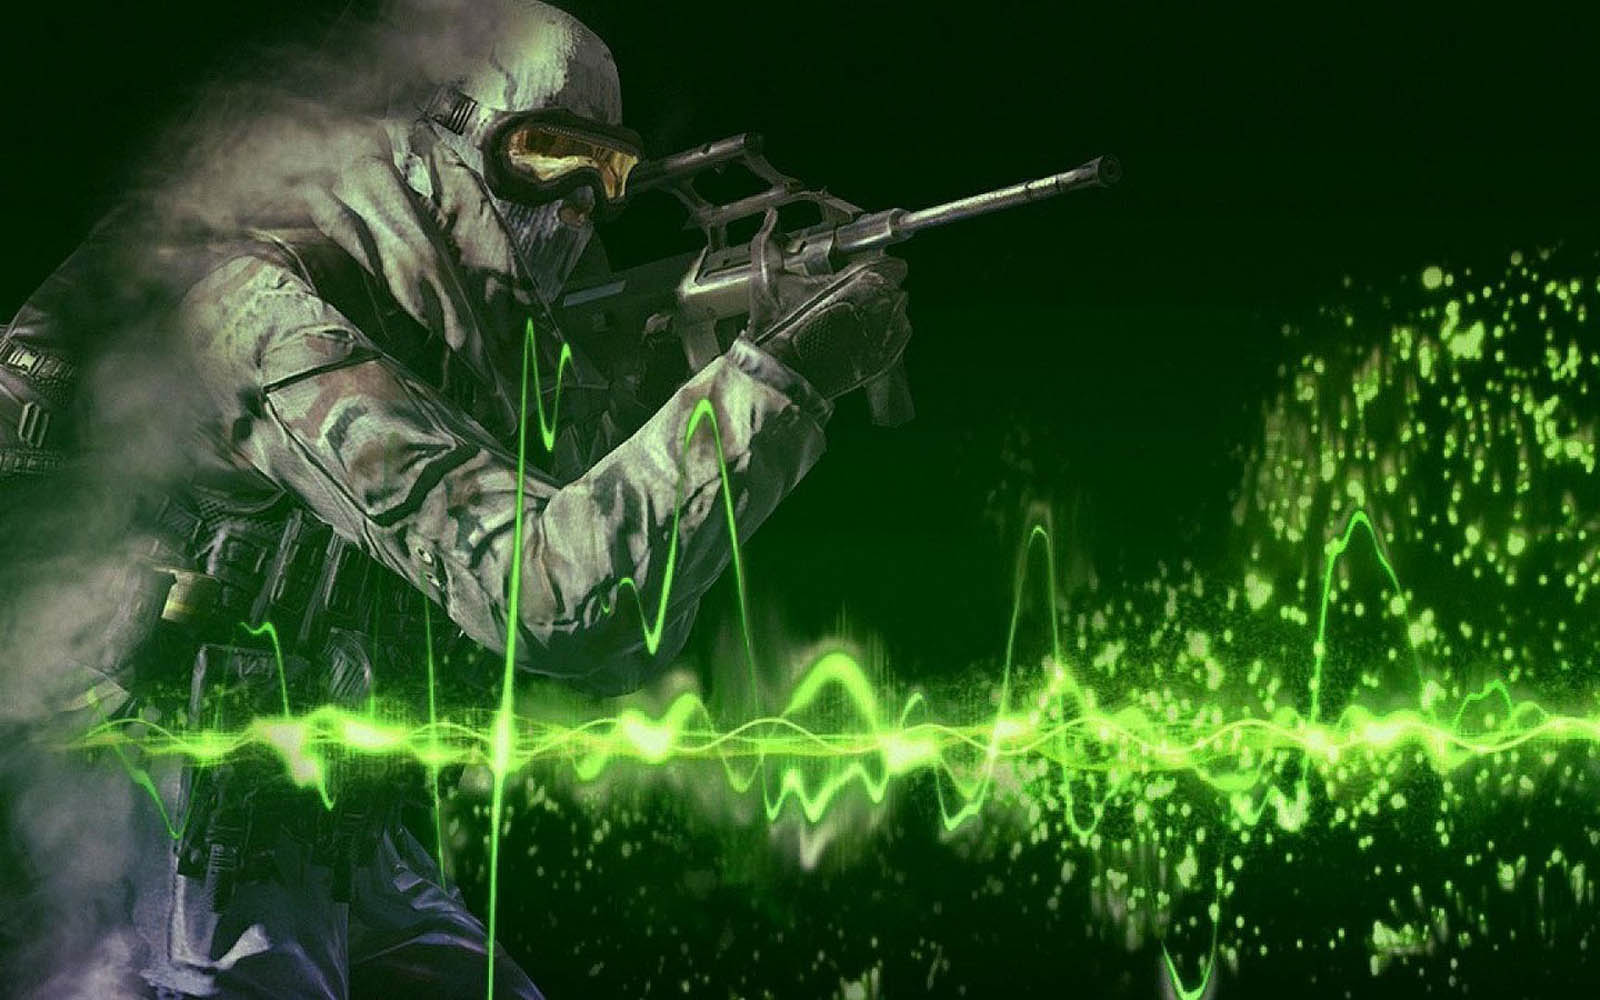 Wallpapers call of duty modern warfare 3 wallpapers for Cool modern wallpapers